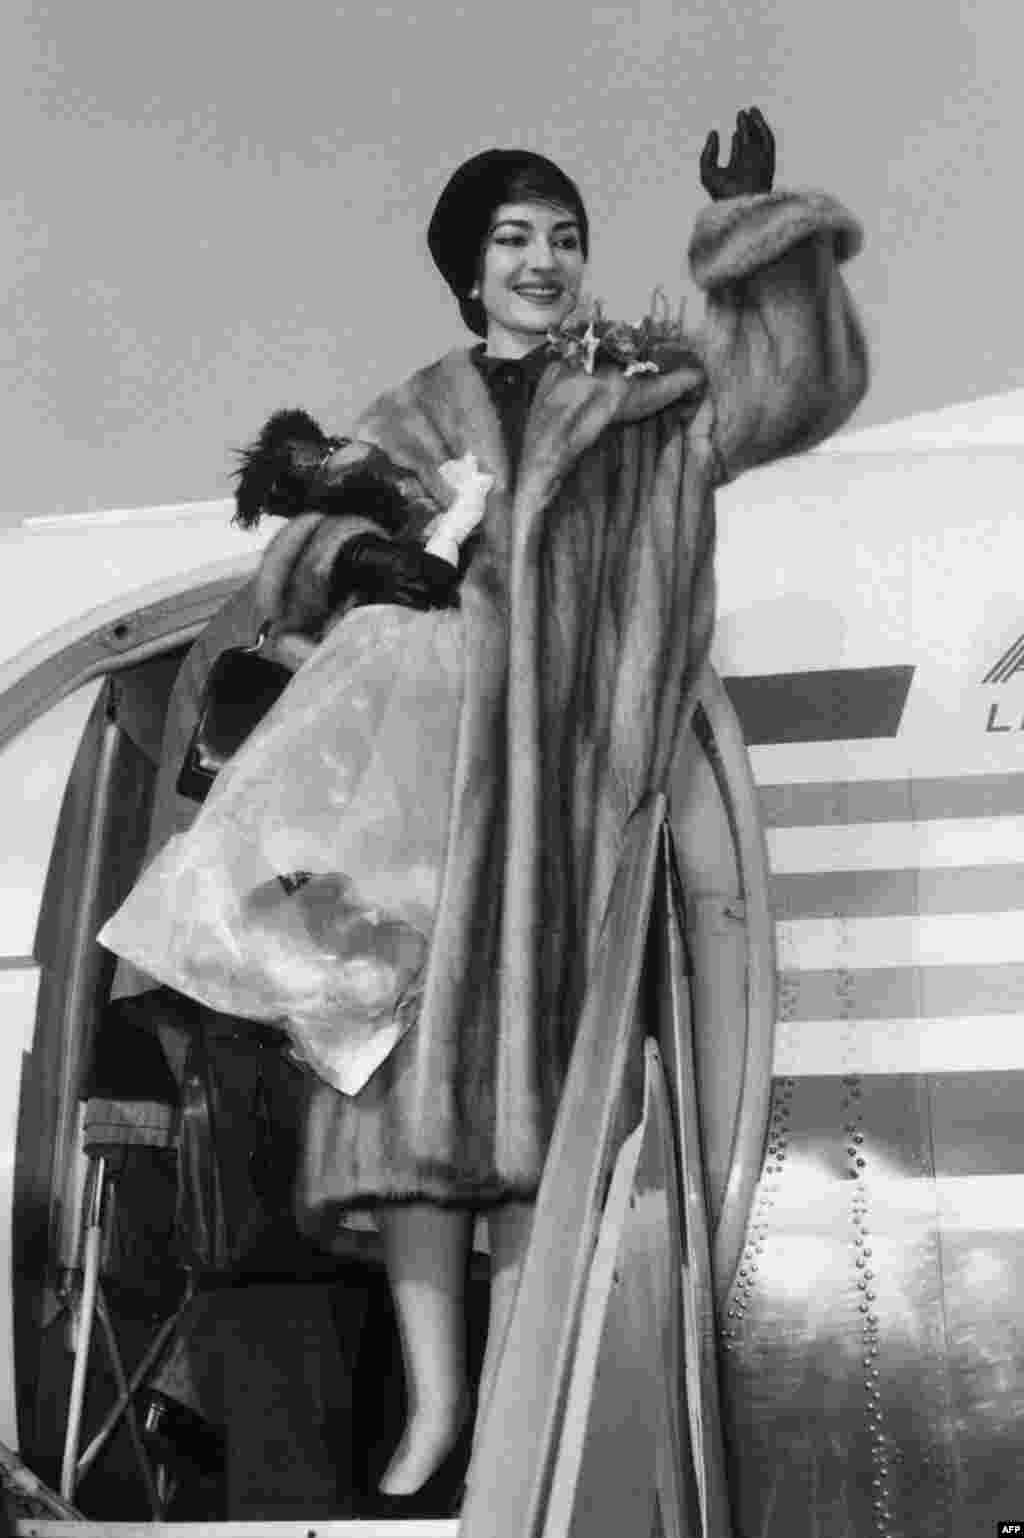 Maria Callas waving as she arrives at Milan's Malpensa airport on January 16, 1958